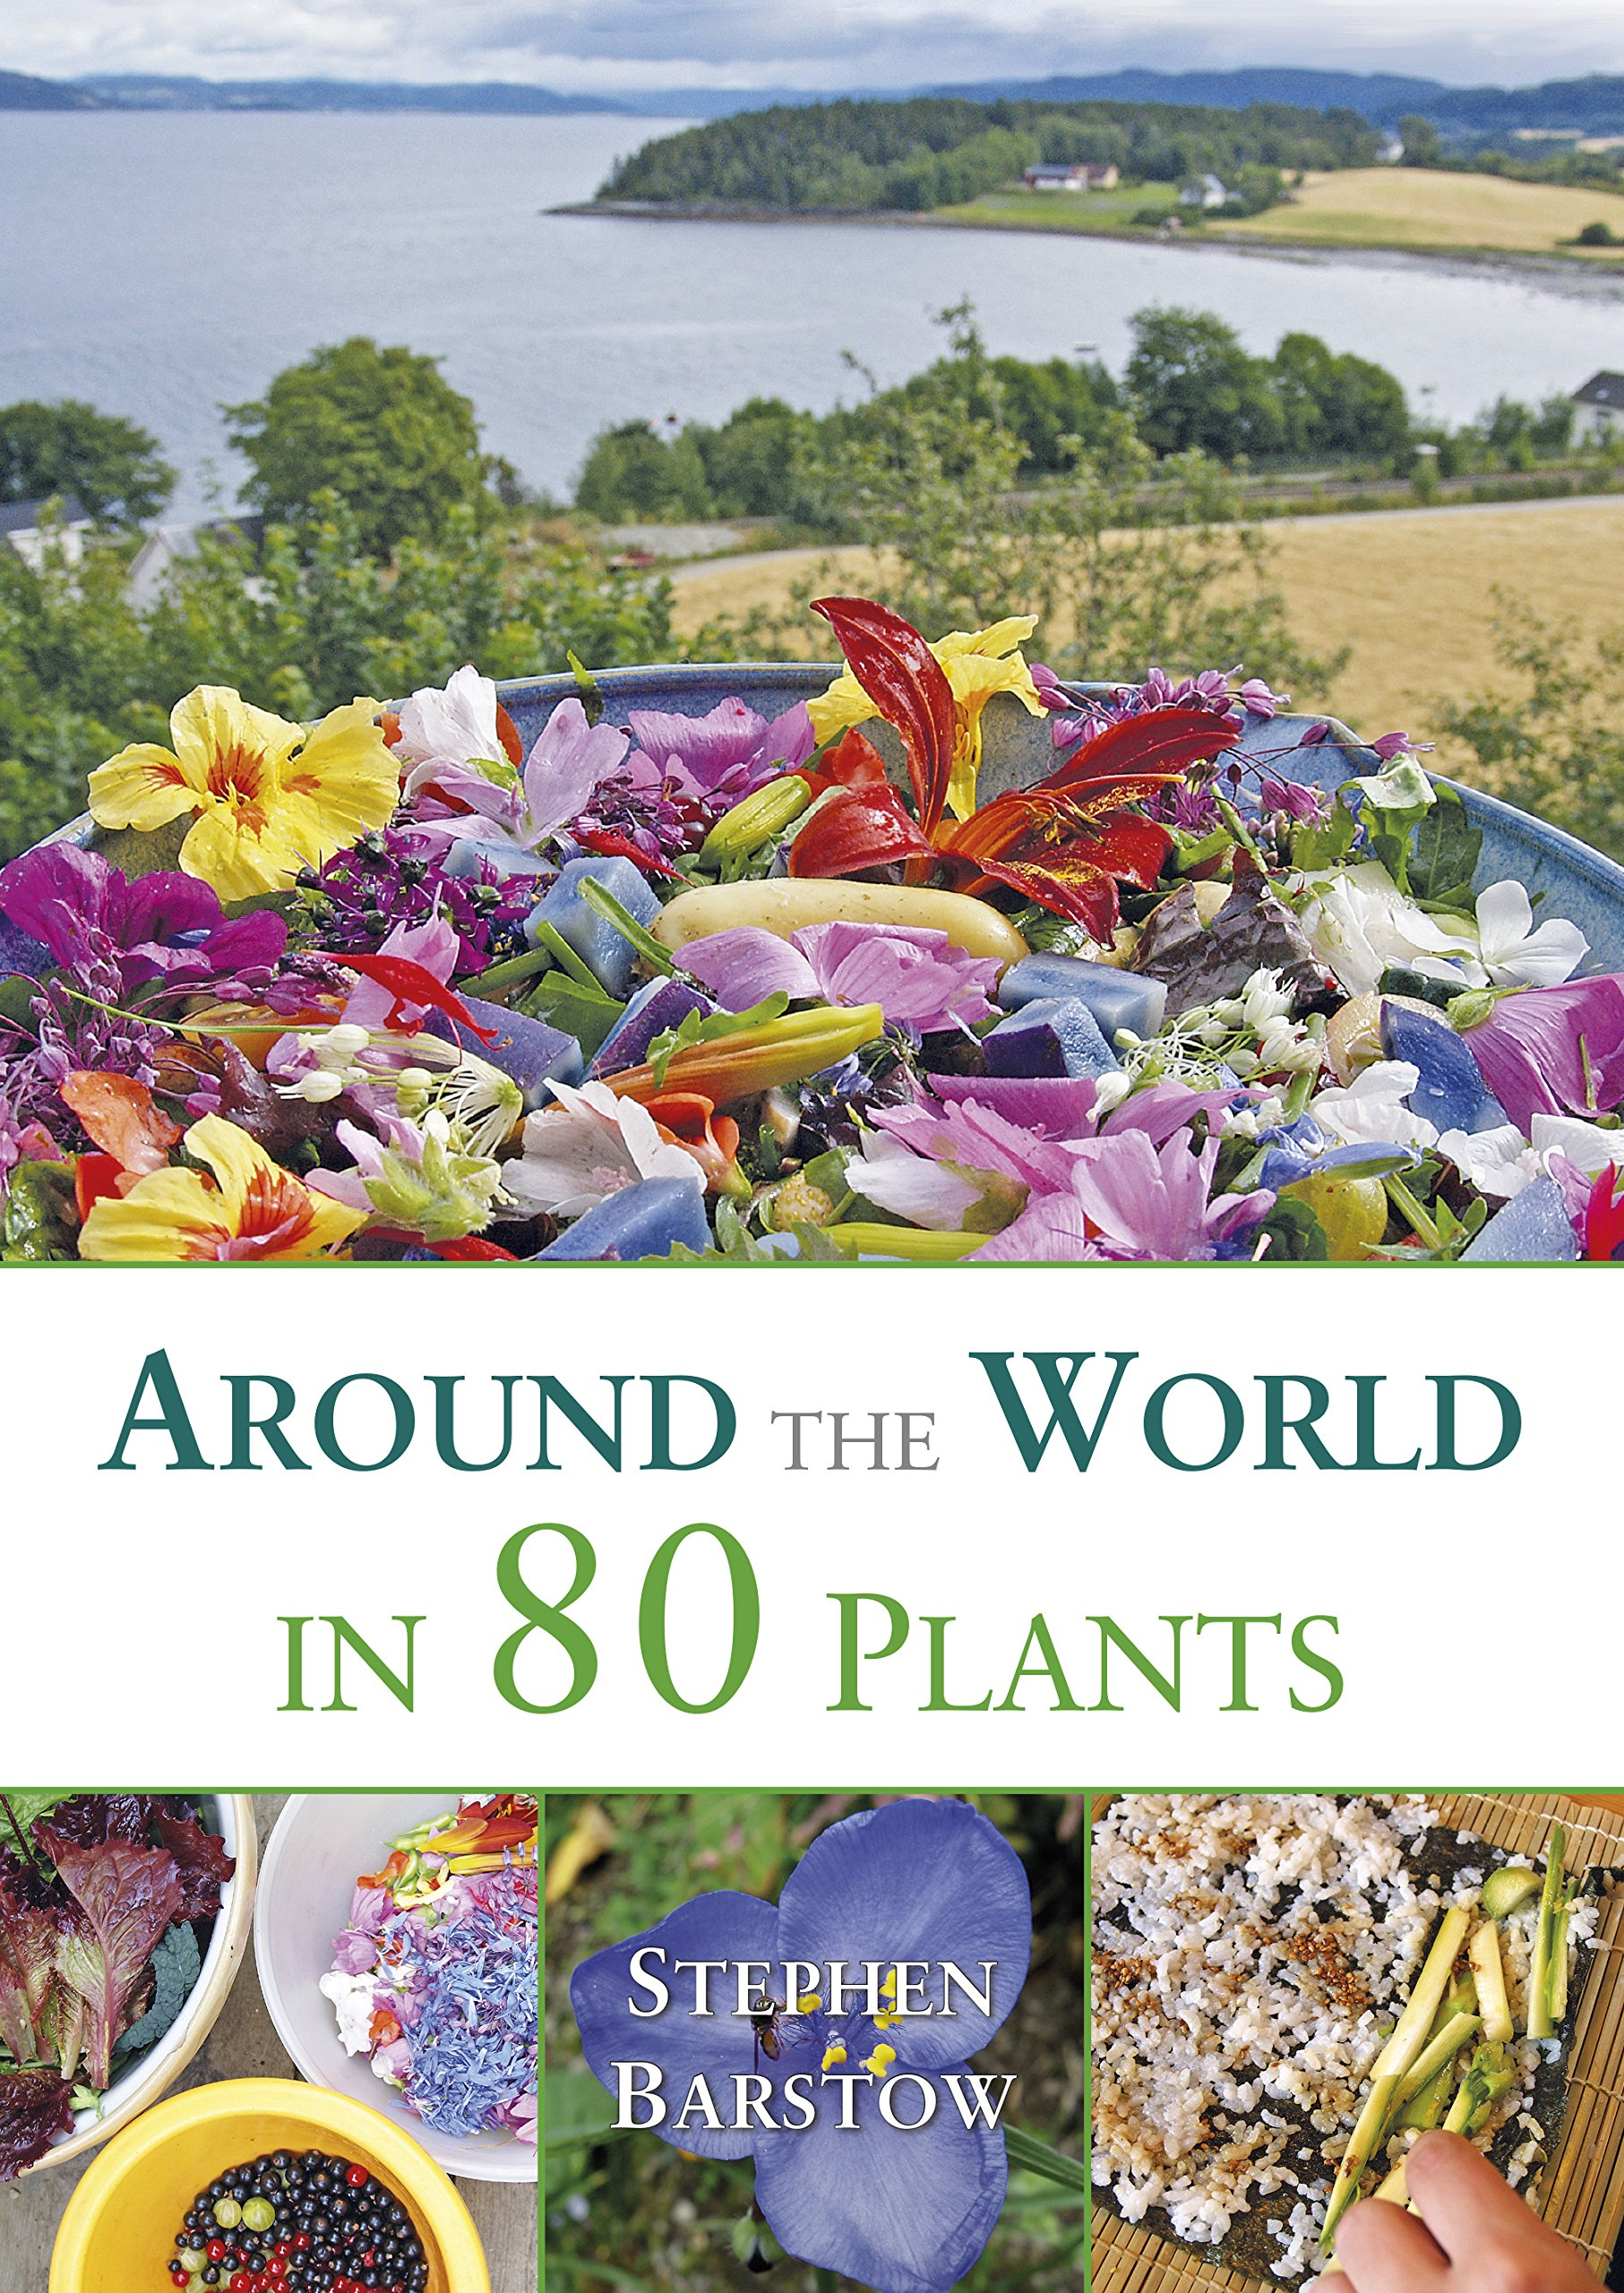 Around The World in 80 Plants: An Edible Perennial Vegetable Adventure for Temperate Climates by Permanent Publications